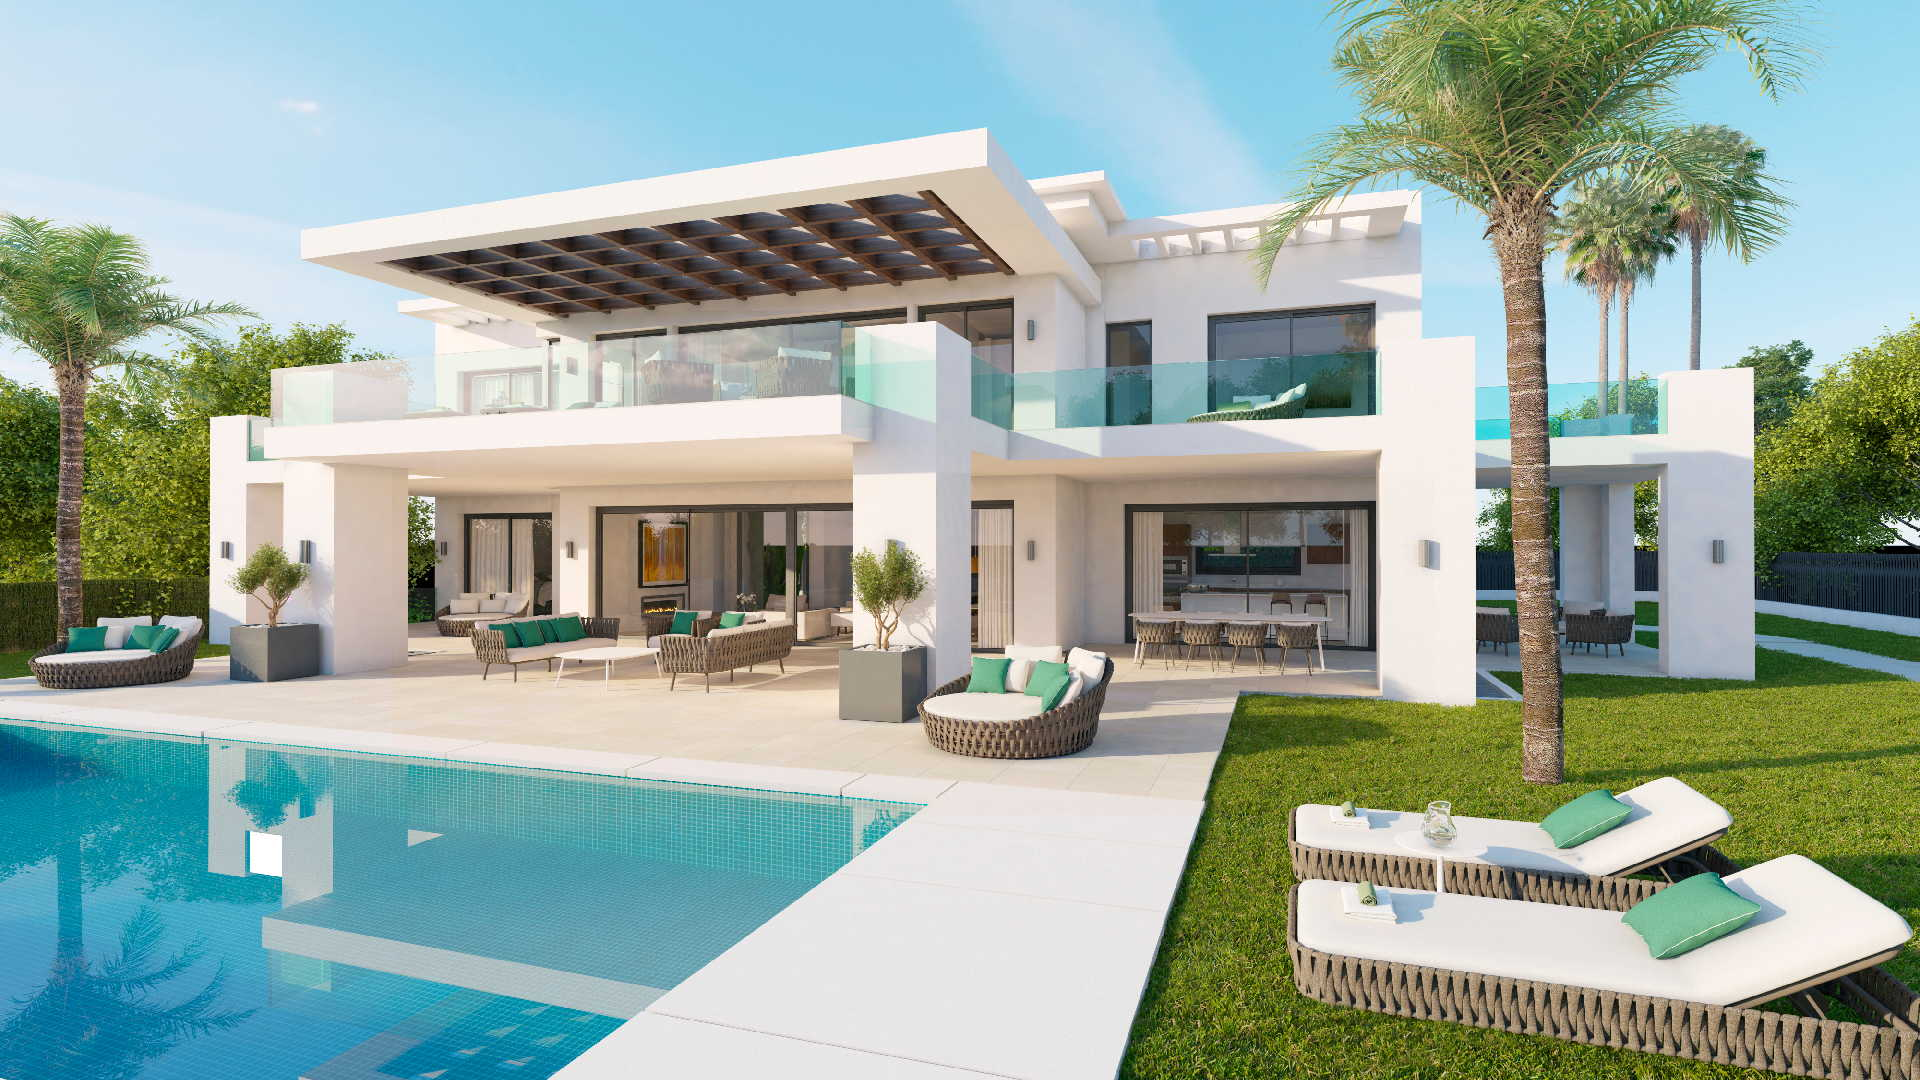 New Villa In Los Olivos Nueva Andalucia Marbella For Sale